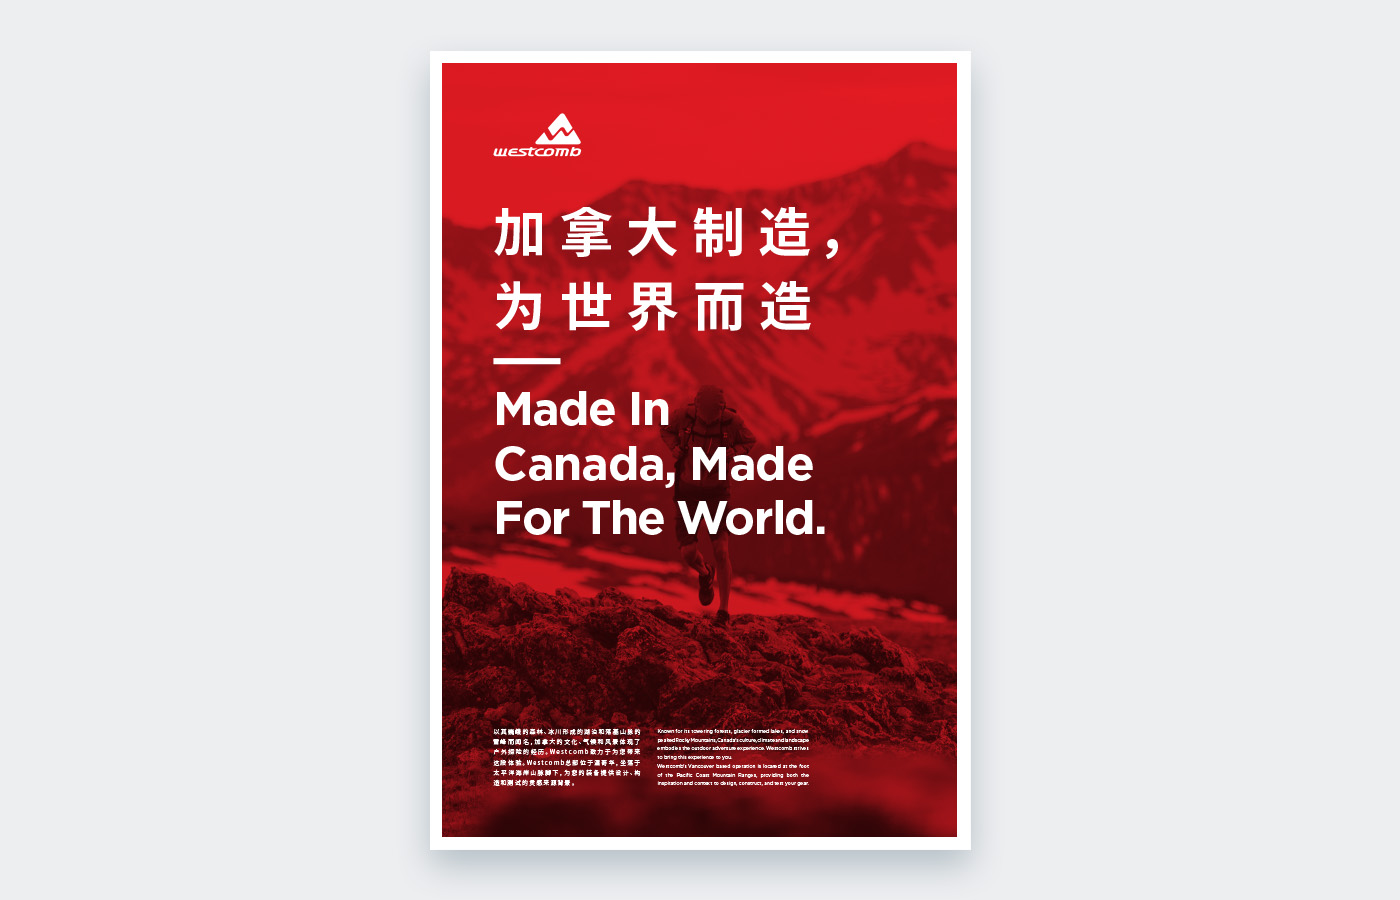 Westcomb poster for a Chinese tradeshow in Beijing